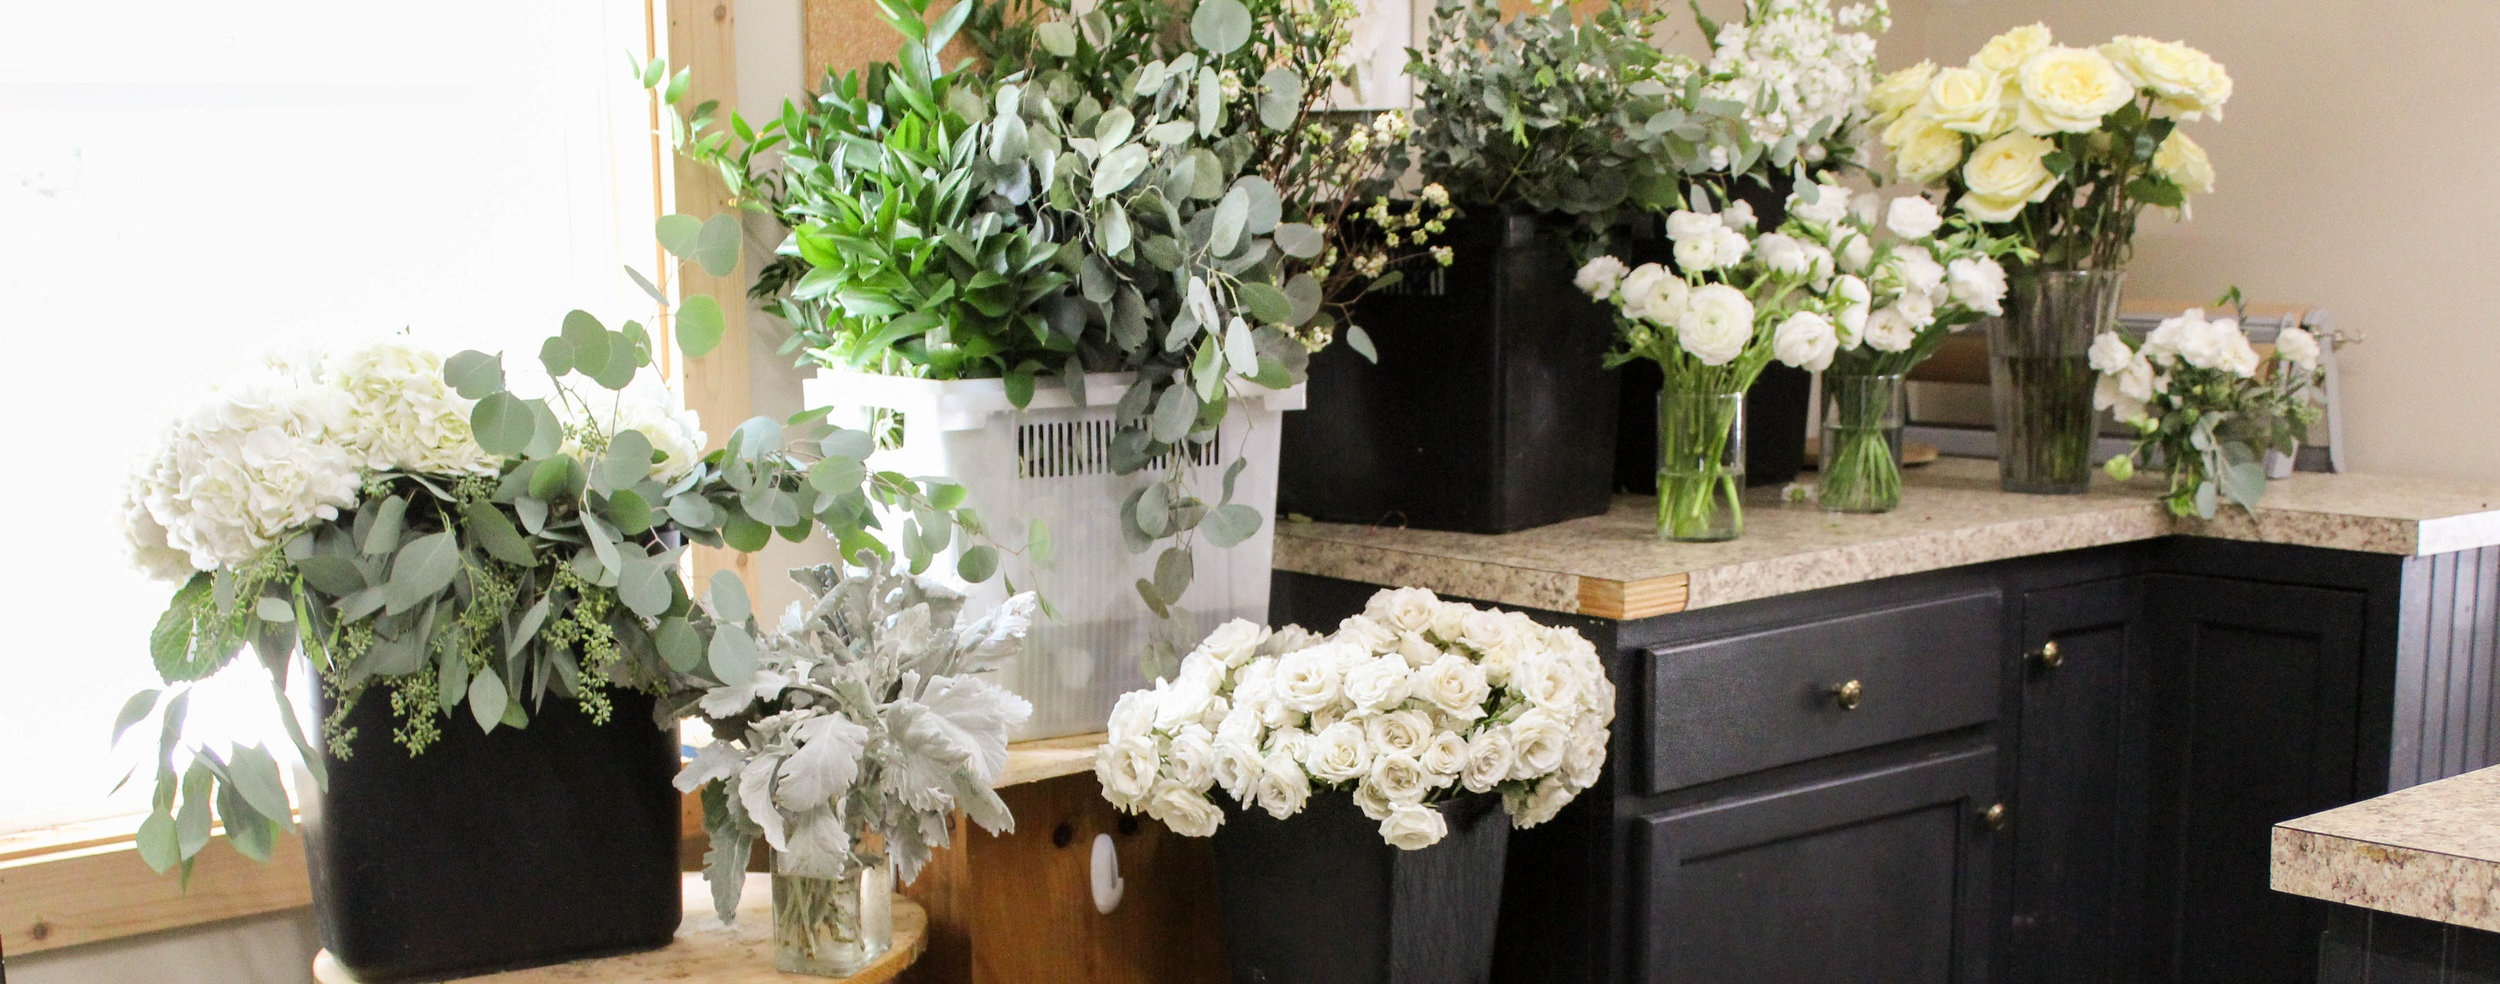 Wedding Flowers Without the Hassle